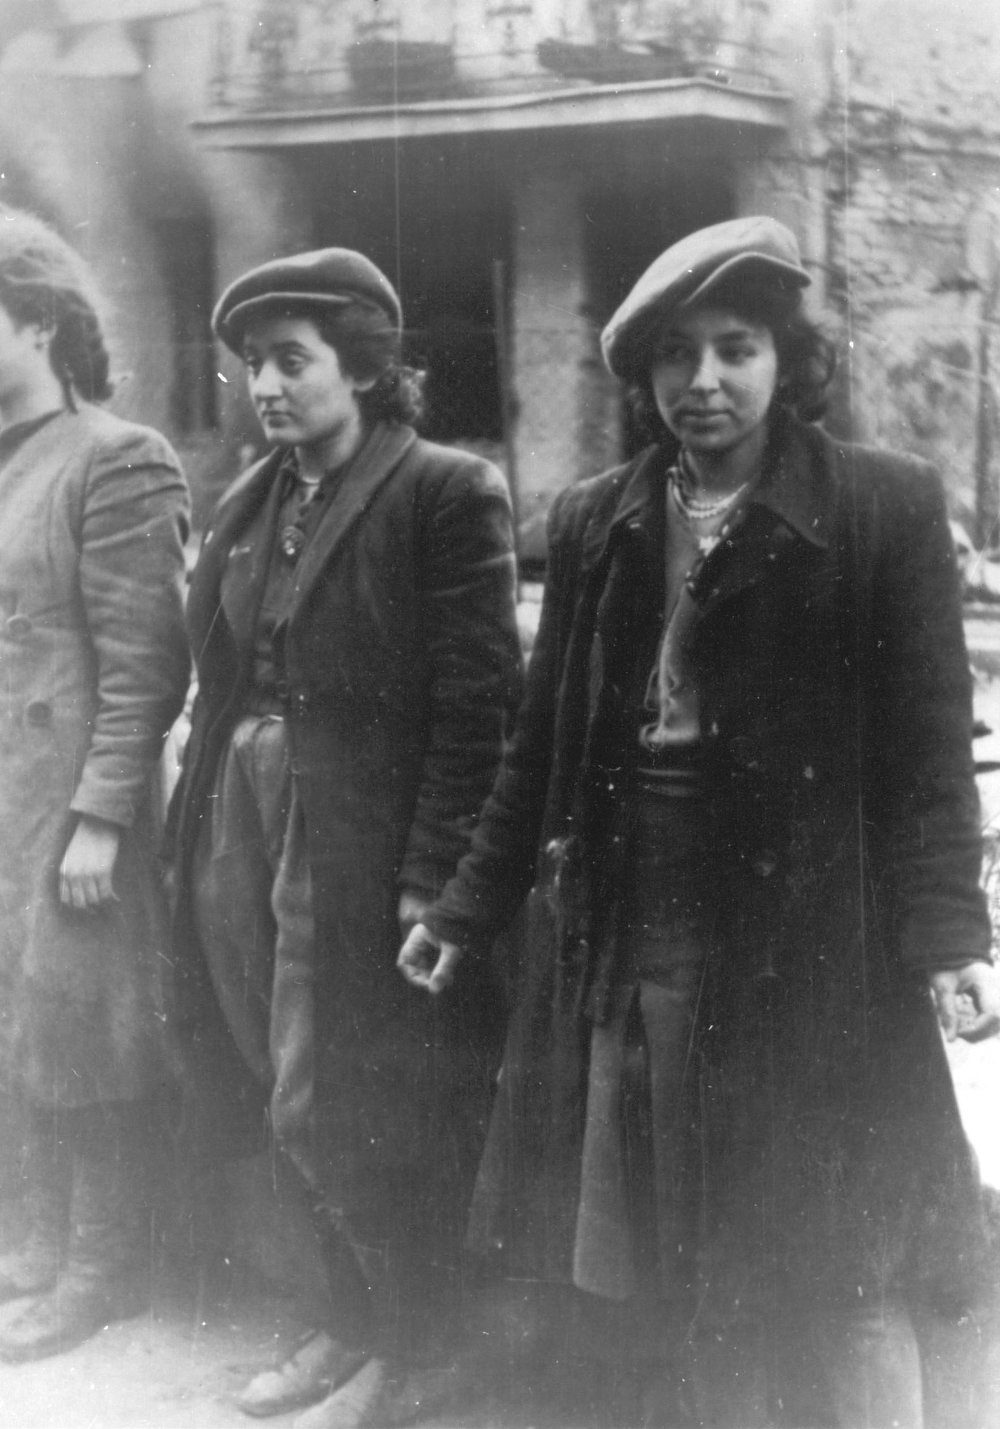 . A group of young Jewish resistance fighters are being held under arrest by German SS soldiers in April/May 1943, during the destruction of the Warsaw Ghetto by  German troops after an uprising in the Jewish quarter. (AP Photo)